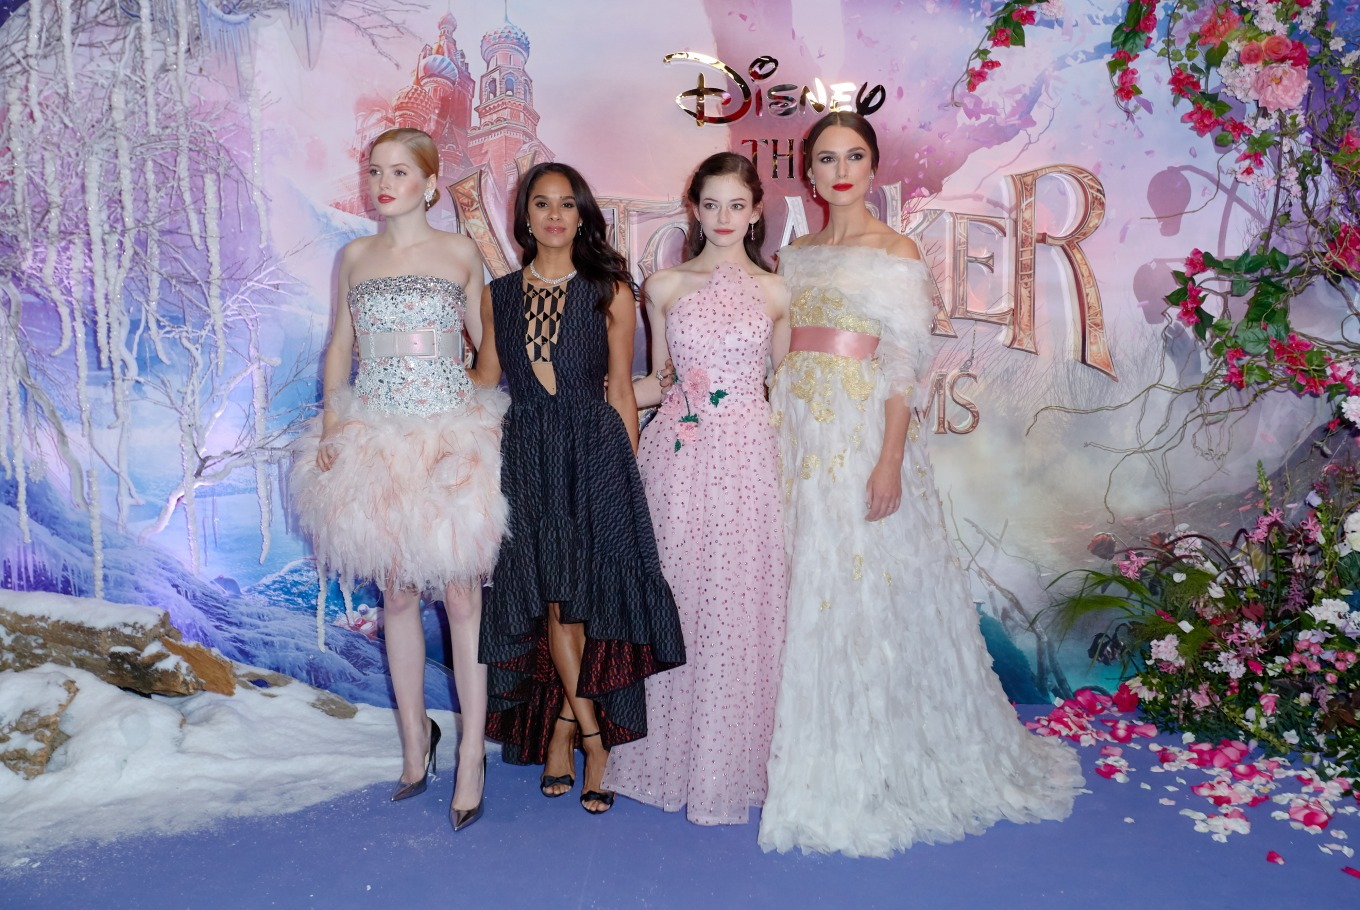 """European Gala Screening of Disney's """"The Nutcracker and the Four Realms"""" at Vue Westfield White City on November 1st, 2018 in London, United Kingdom."""